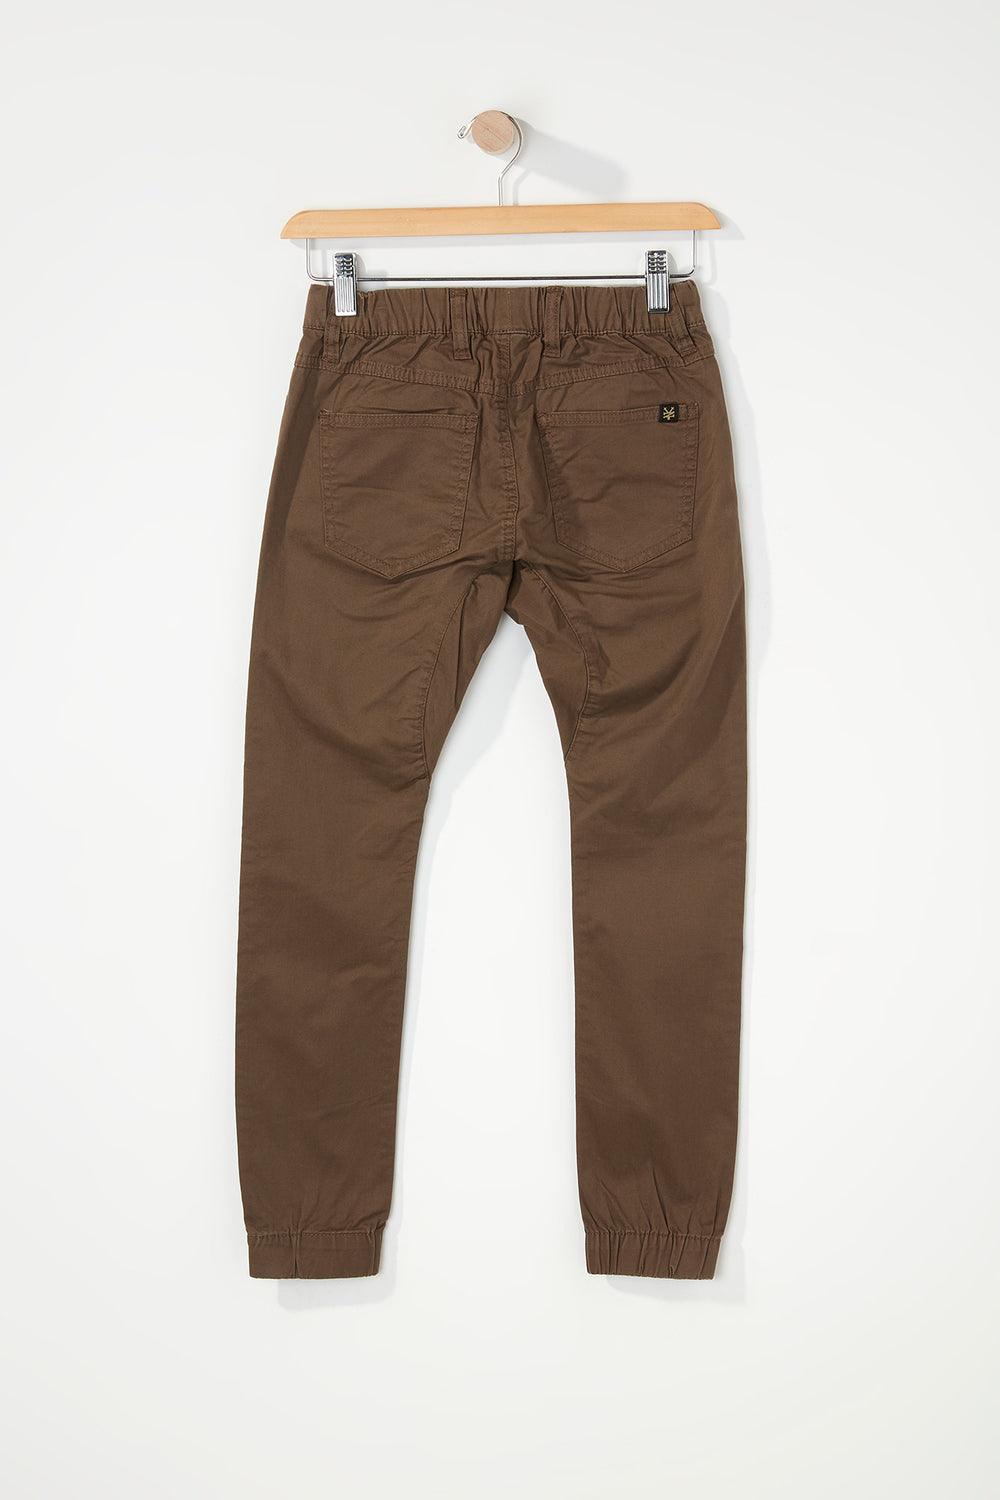 Zoo York Boys 5-Pocket Jogger Brown